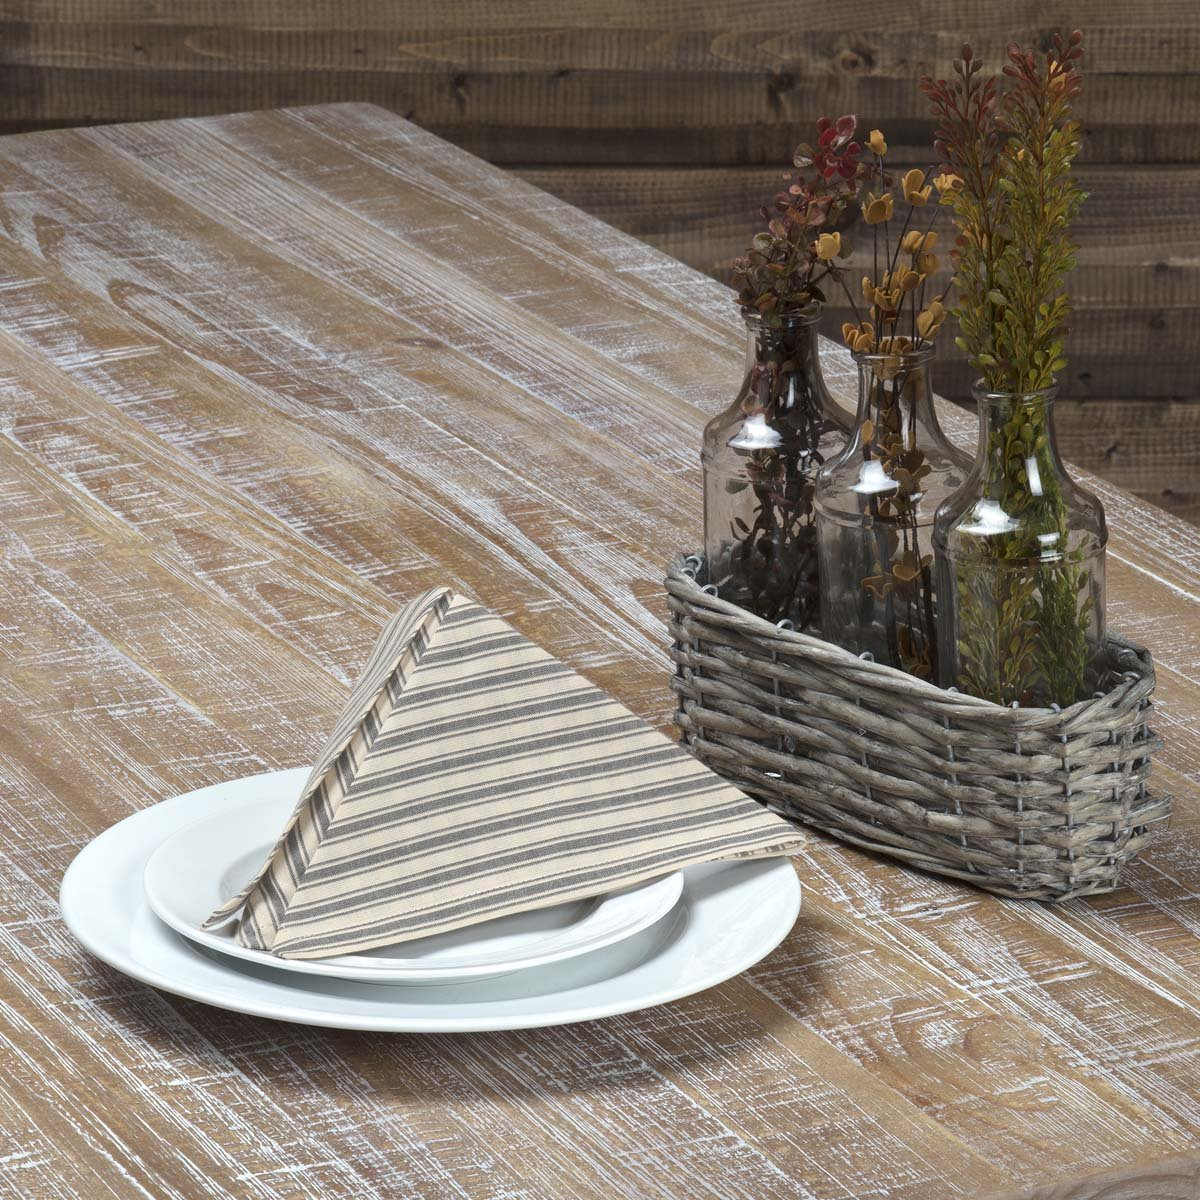 Kendra Stripe White Napkin Set of 6 Red VHC Brands Classic Country Farmhouse Tabletop /& Kitchen